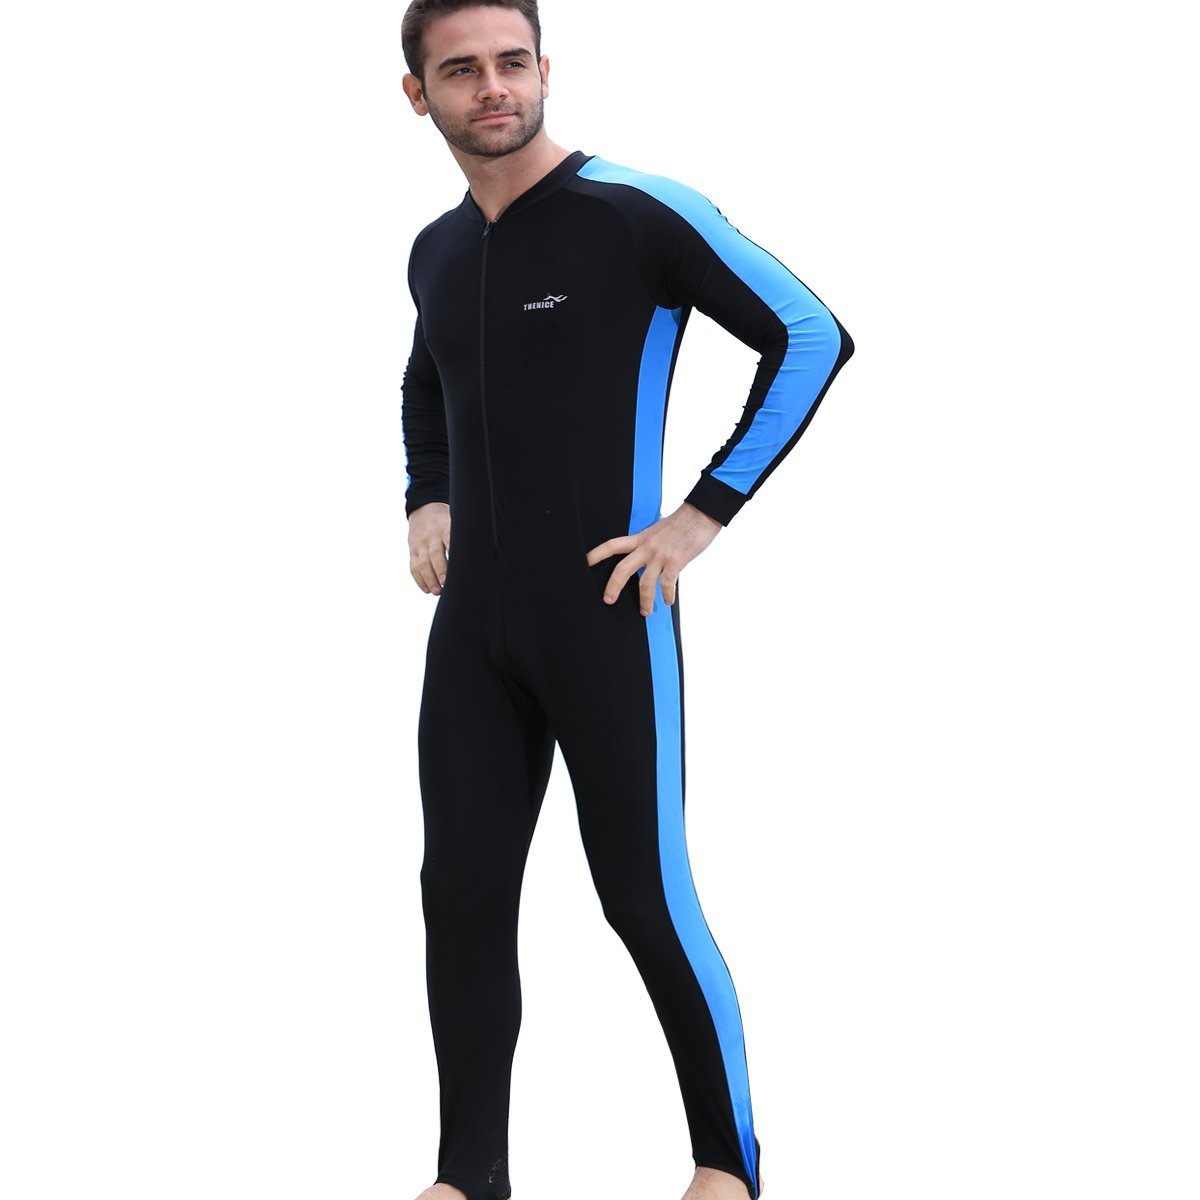 fa6c487baf Get Quotations · LUOOV Full Wetsuits Snorkeling Dive Skins Diving Suits